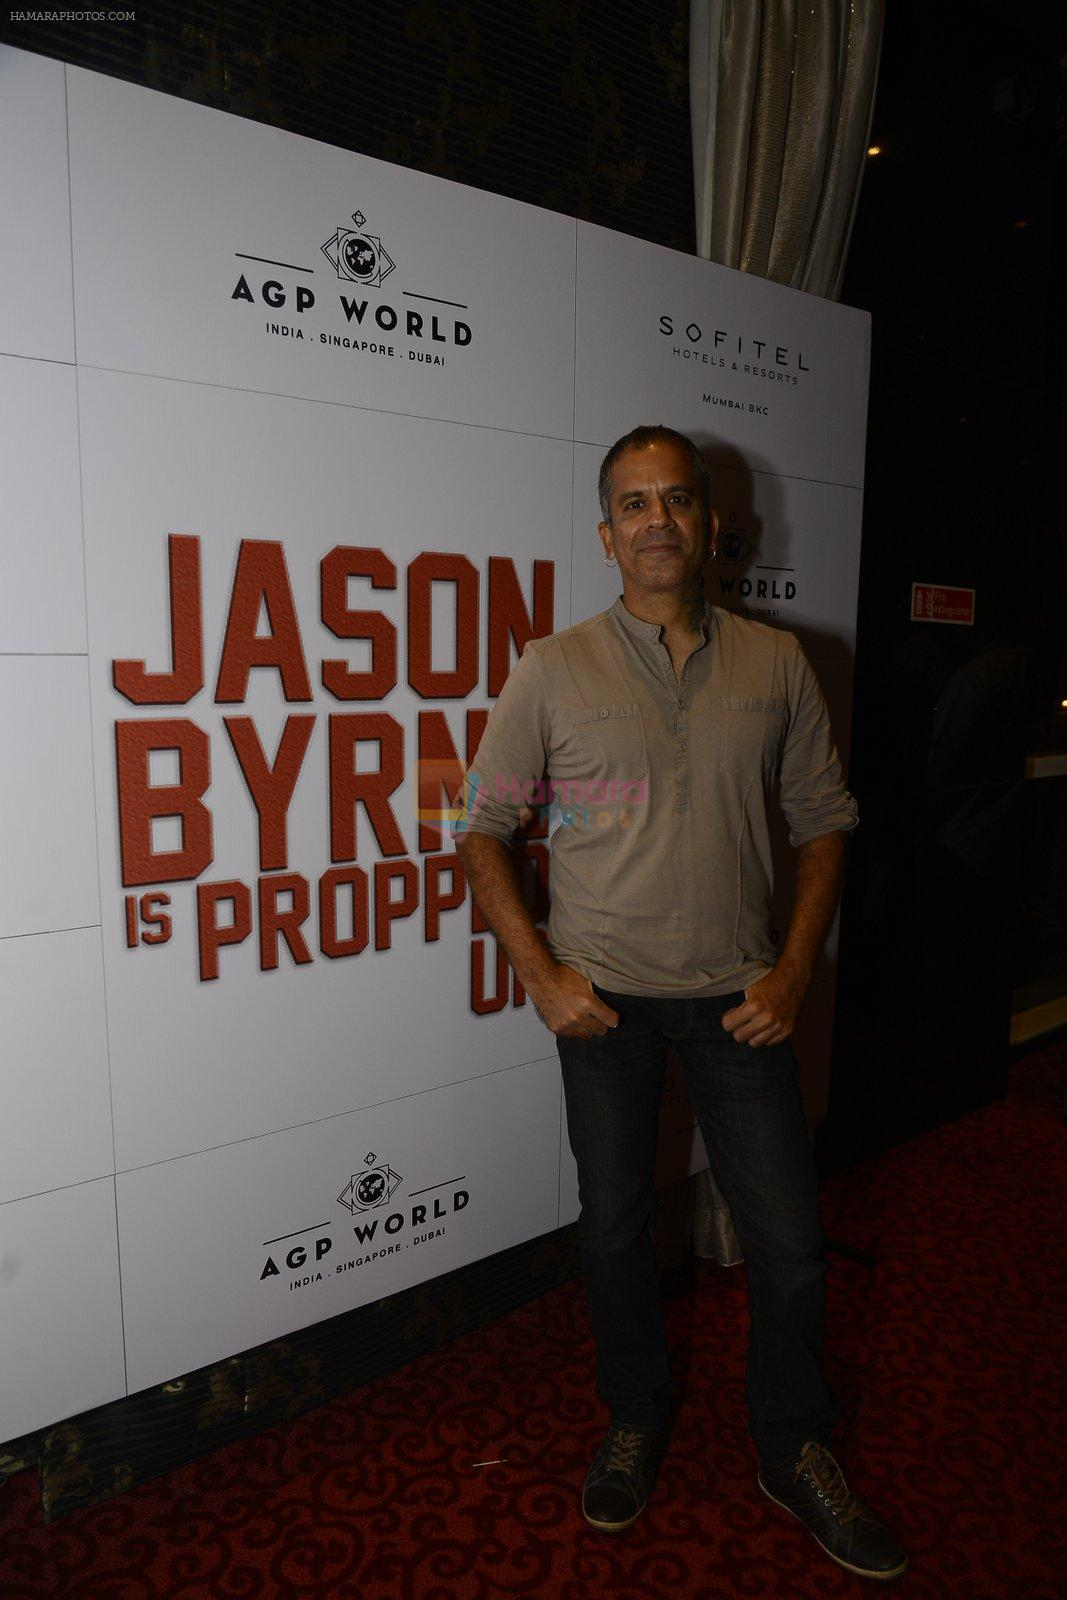 at Jason Byrne stand up comedian's premiere show on 15th Sept 2016